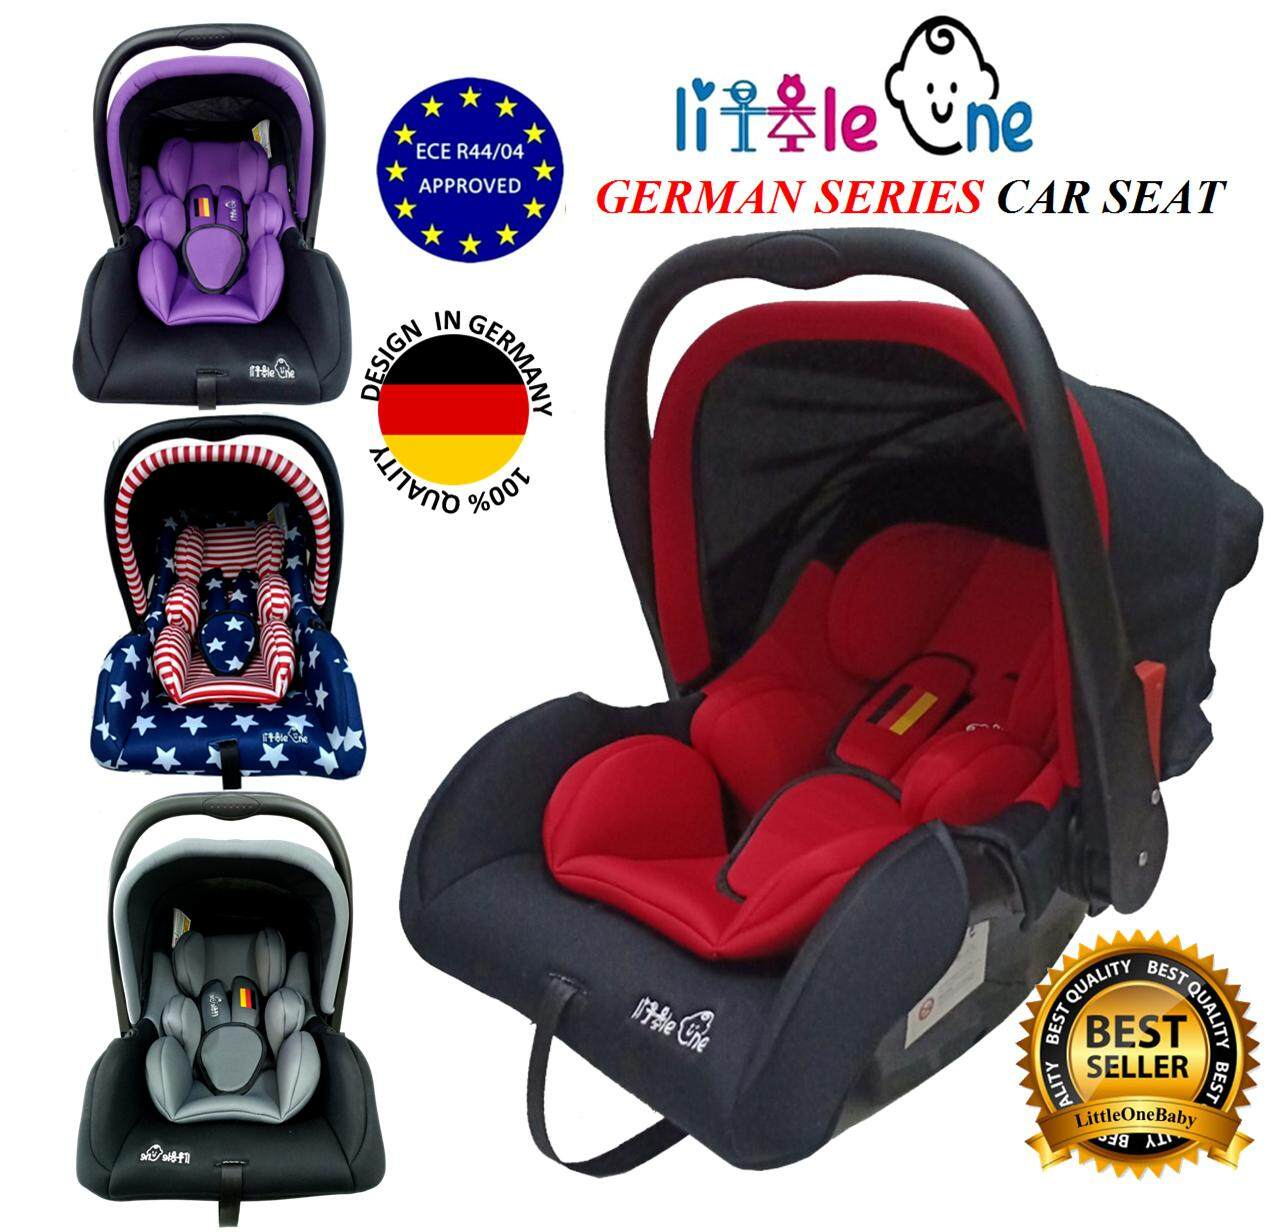 Newborn Car Seat Set Up Little One Exclusive Csa 4 In 1 Baby Car Seat Baby Carrier Best Seller 2 Year Warranty